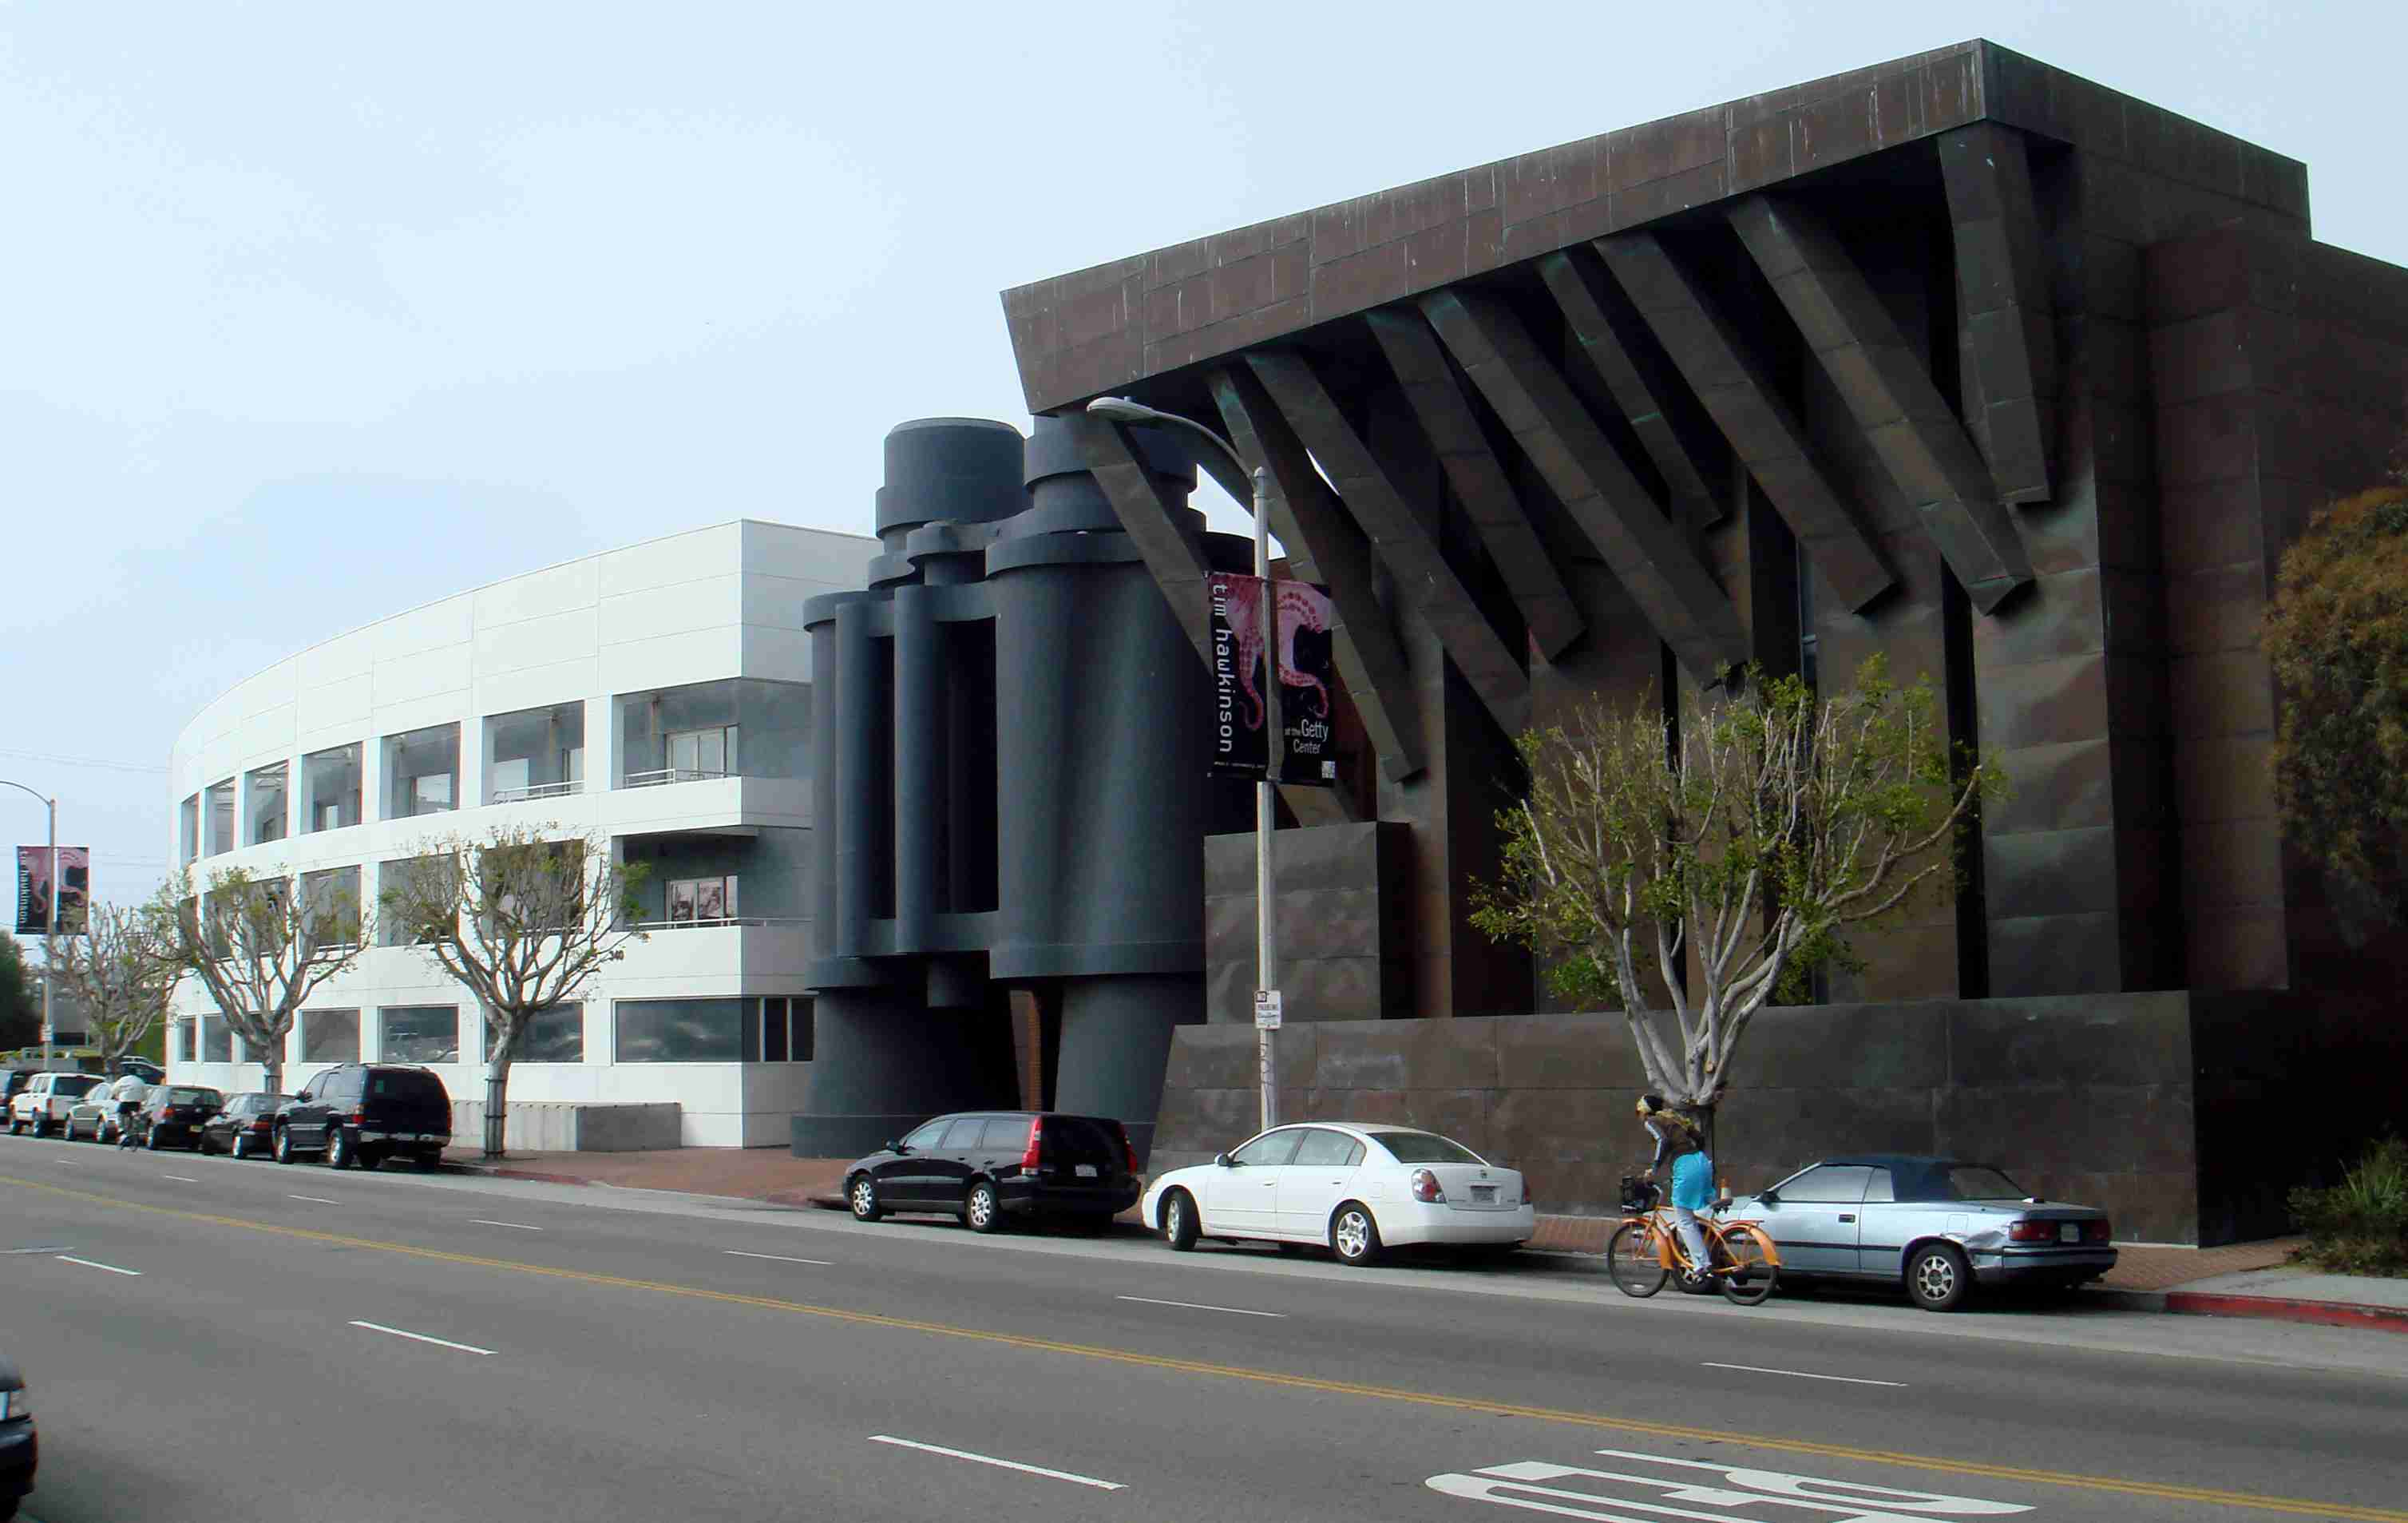 The Chiat/Day Building Complex in Venice, California with sculpture of binoculars